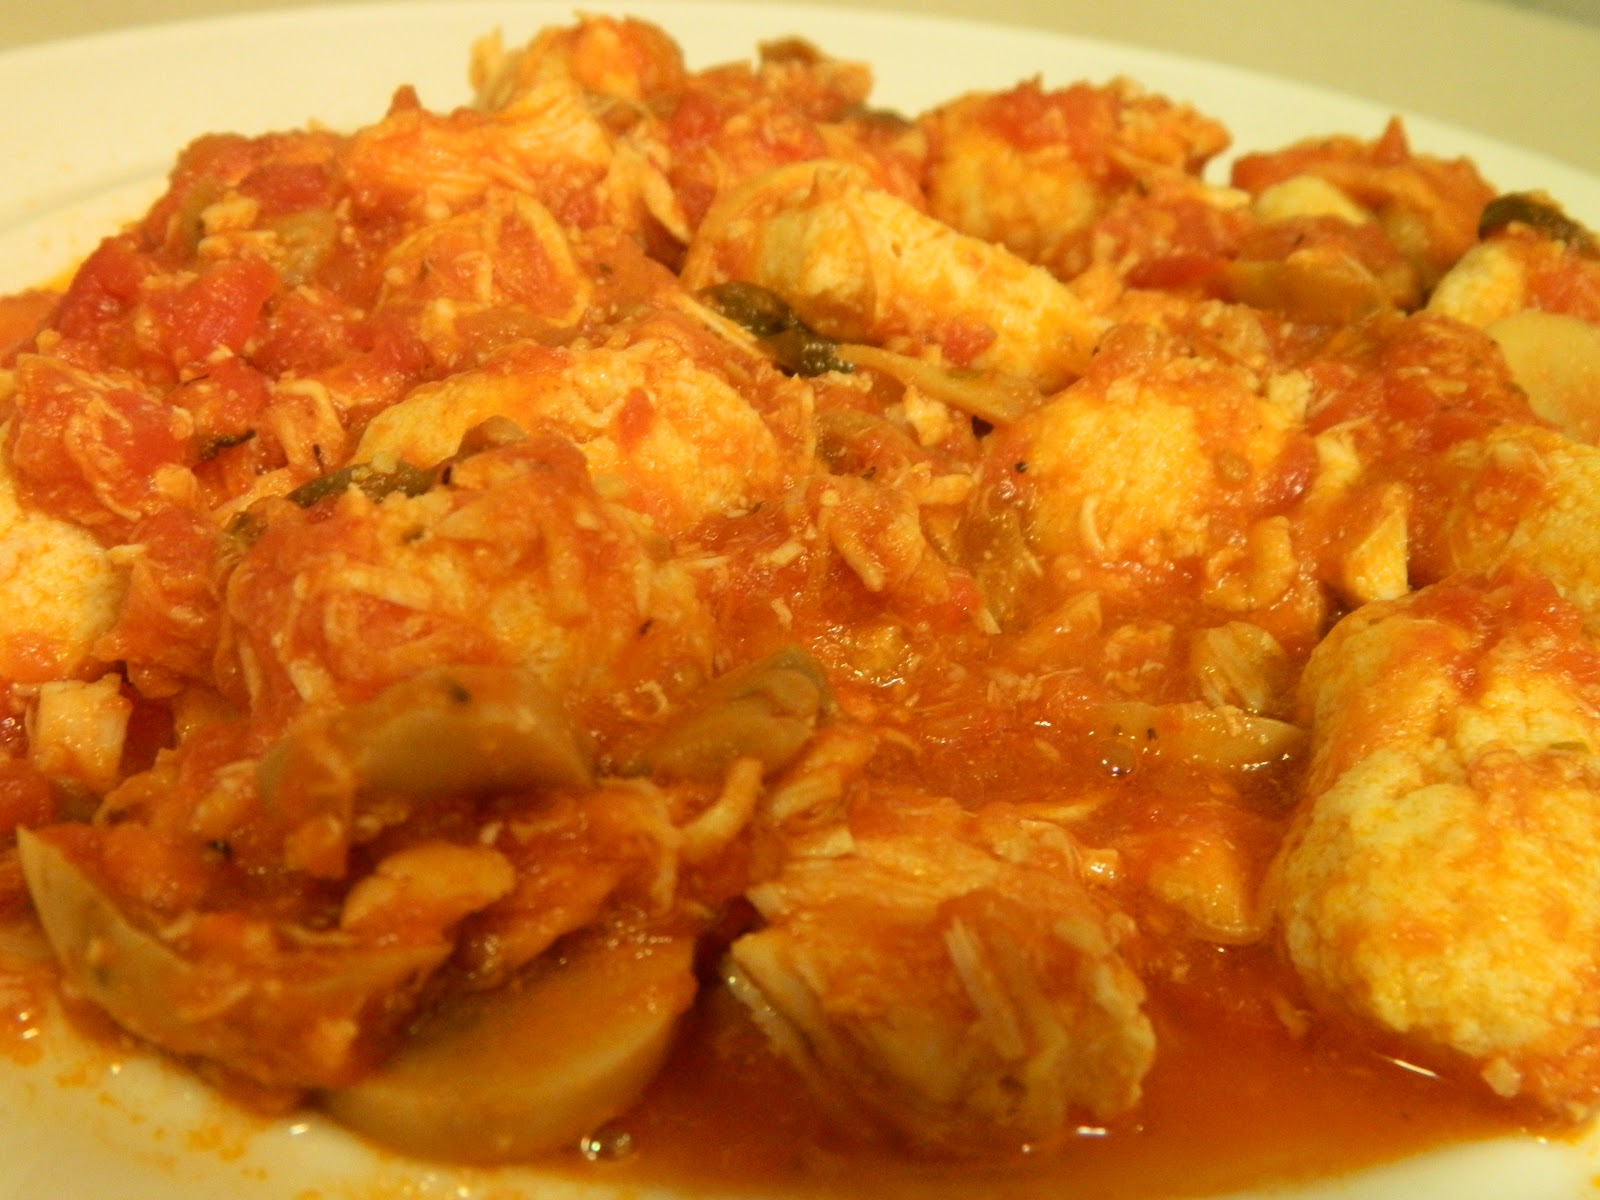 Ginny's Low Carb Kitchen: Chicken Marinara and Gnocchi